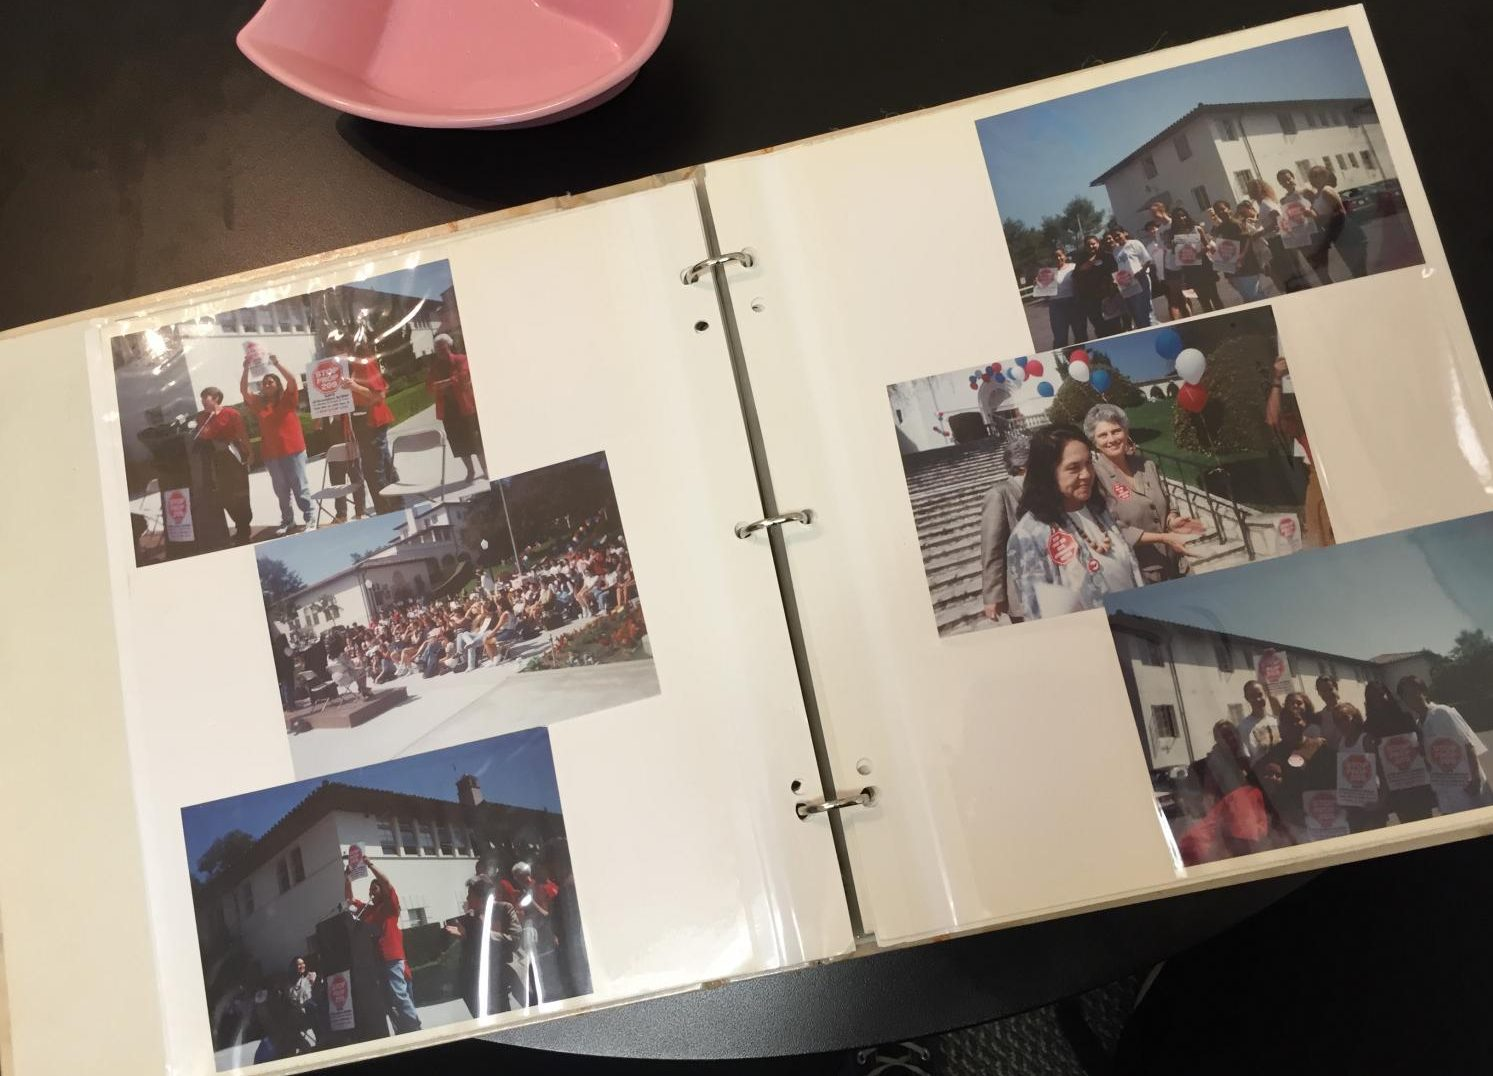 Bridges' photo album with images of her and workers-right activist Dolores Huerta protesting. They were leading a rally to protest Prop 209, in order to fight for more diversity at universities.